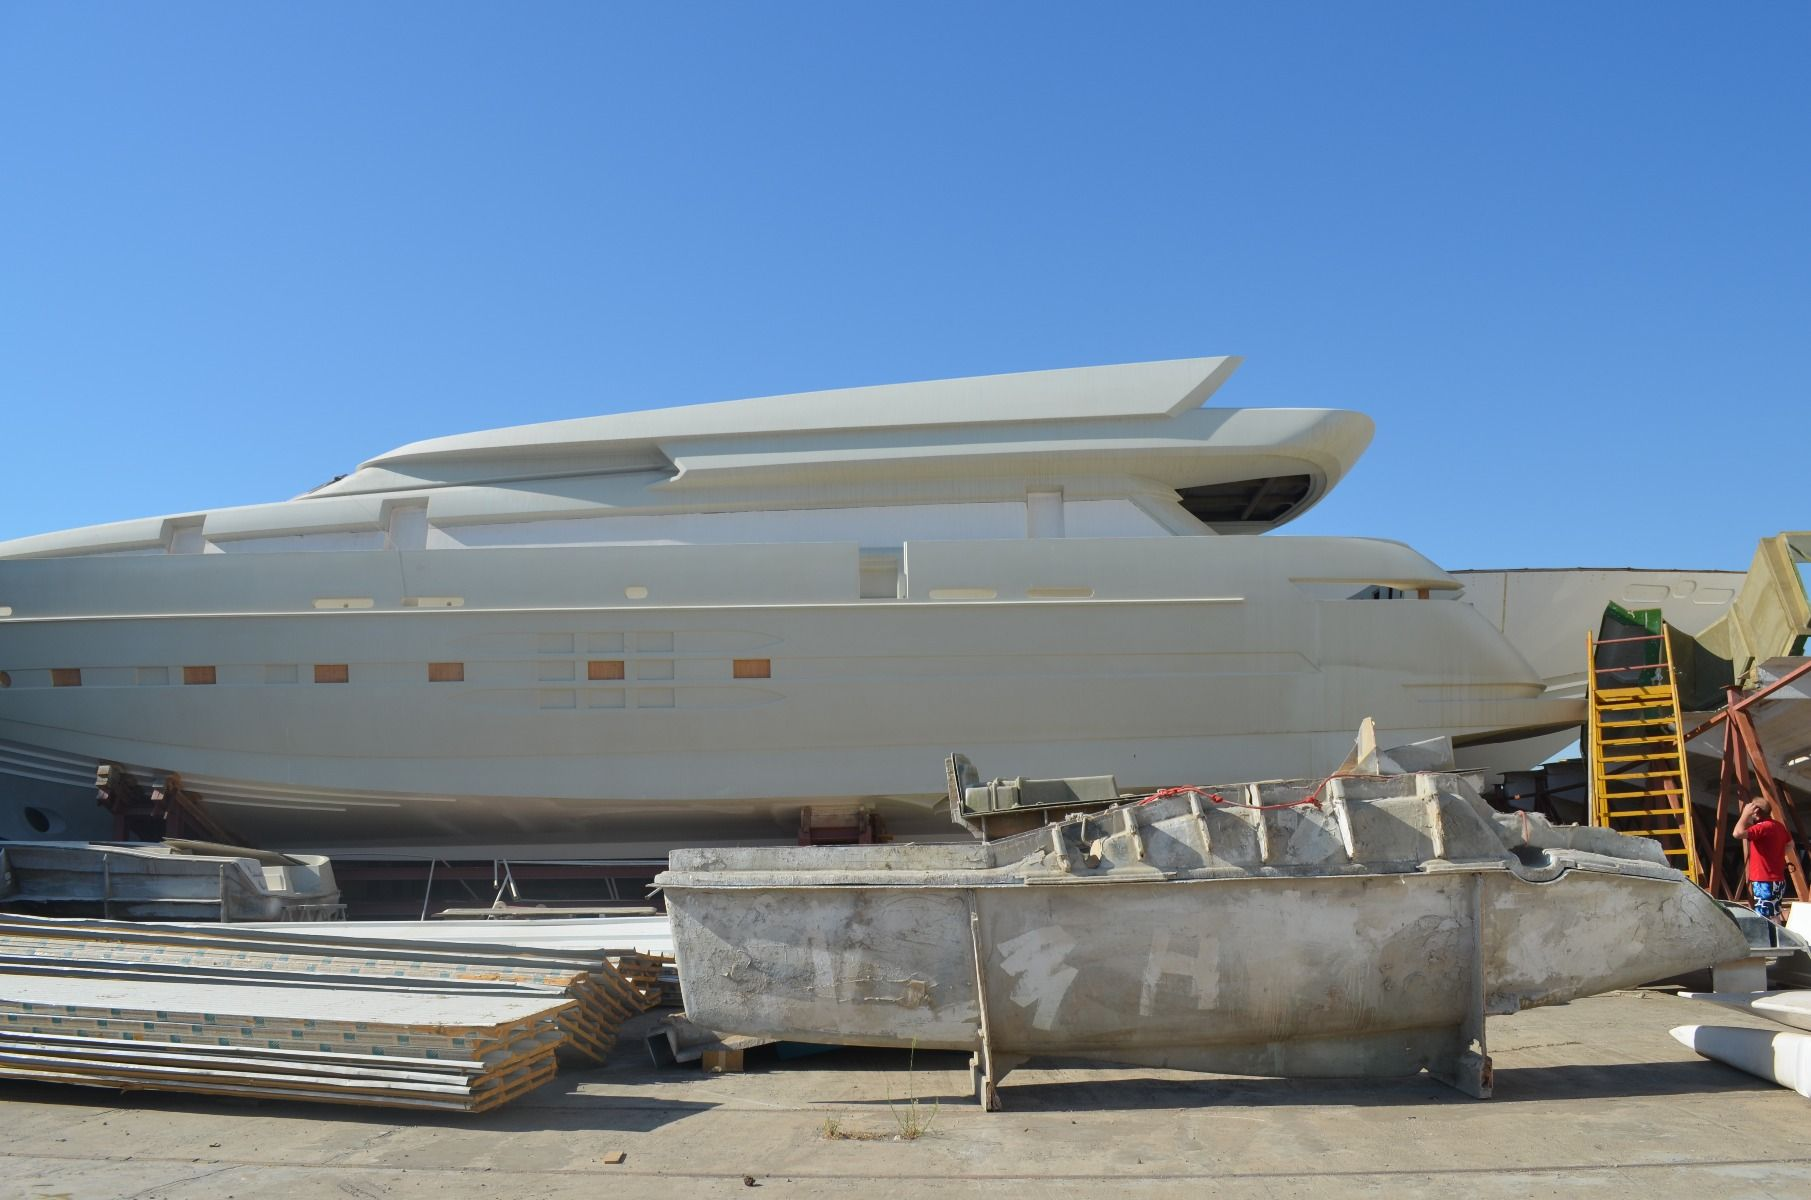 Unfinished Project - MOTOR YACHT 125'ft / 37m